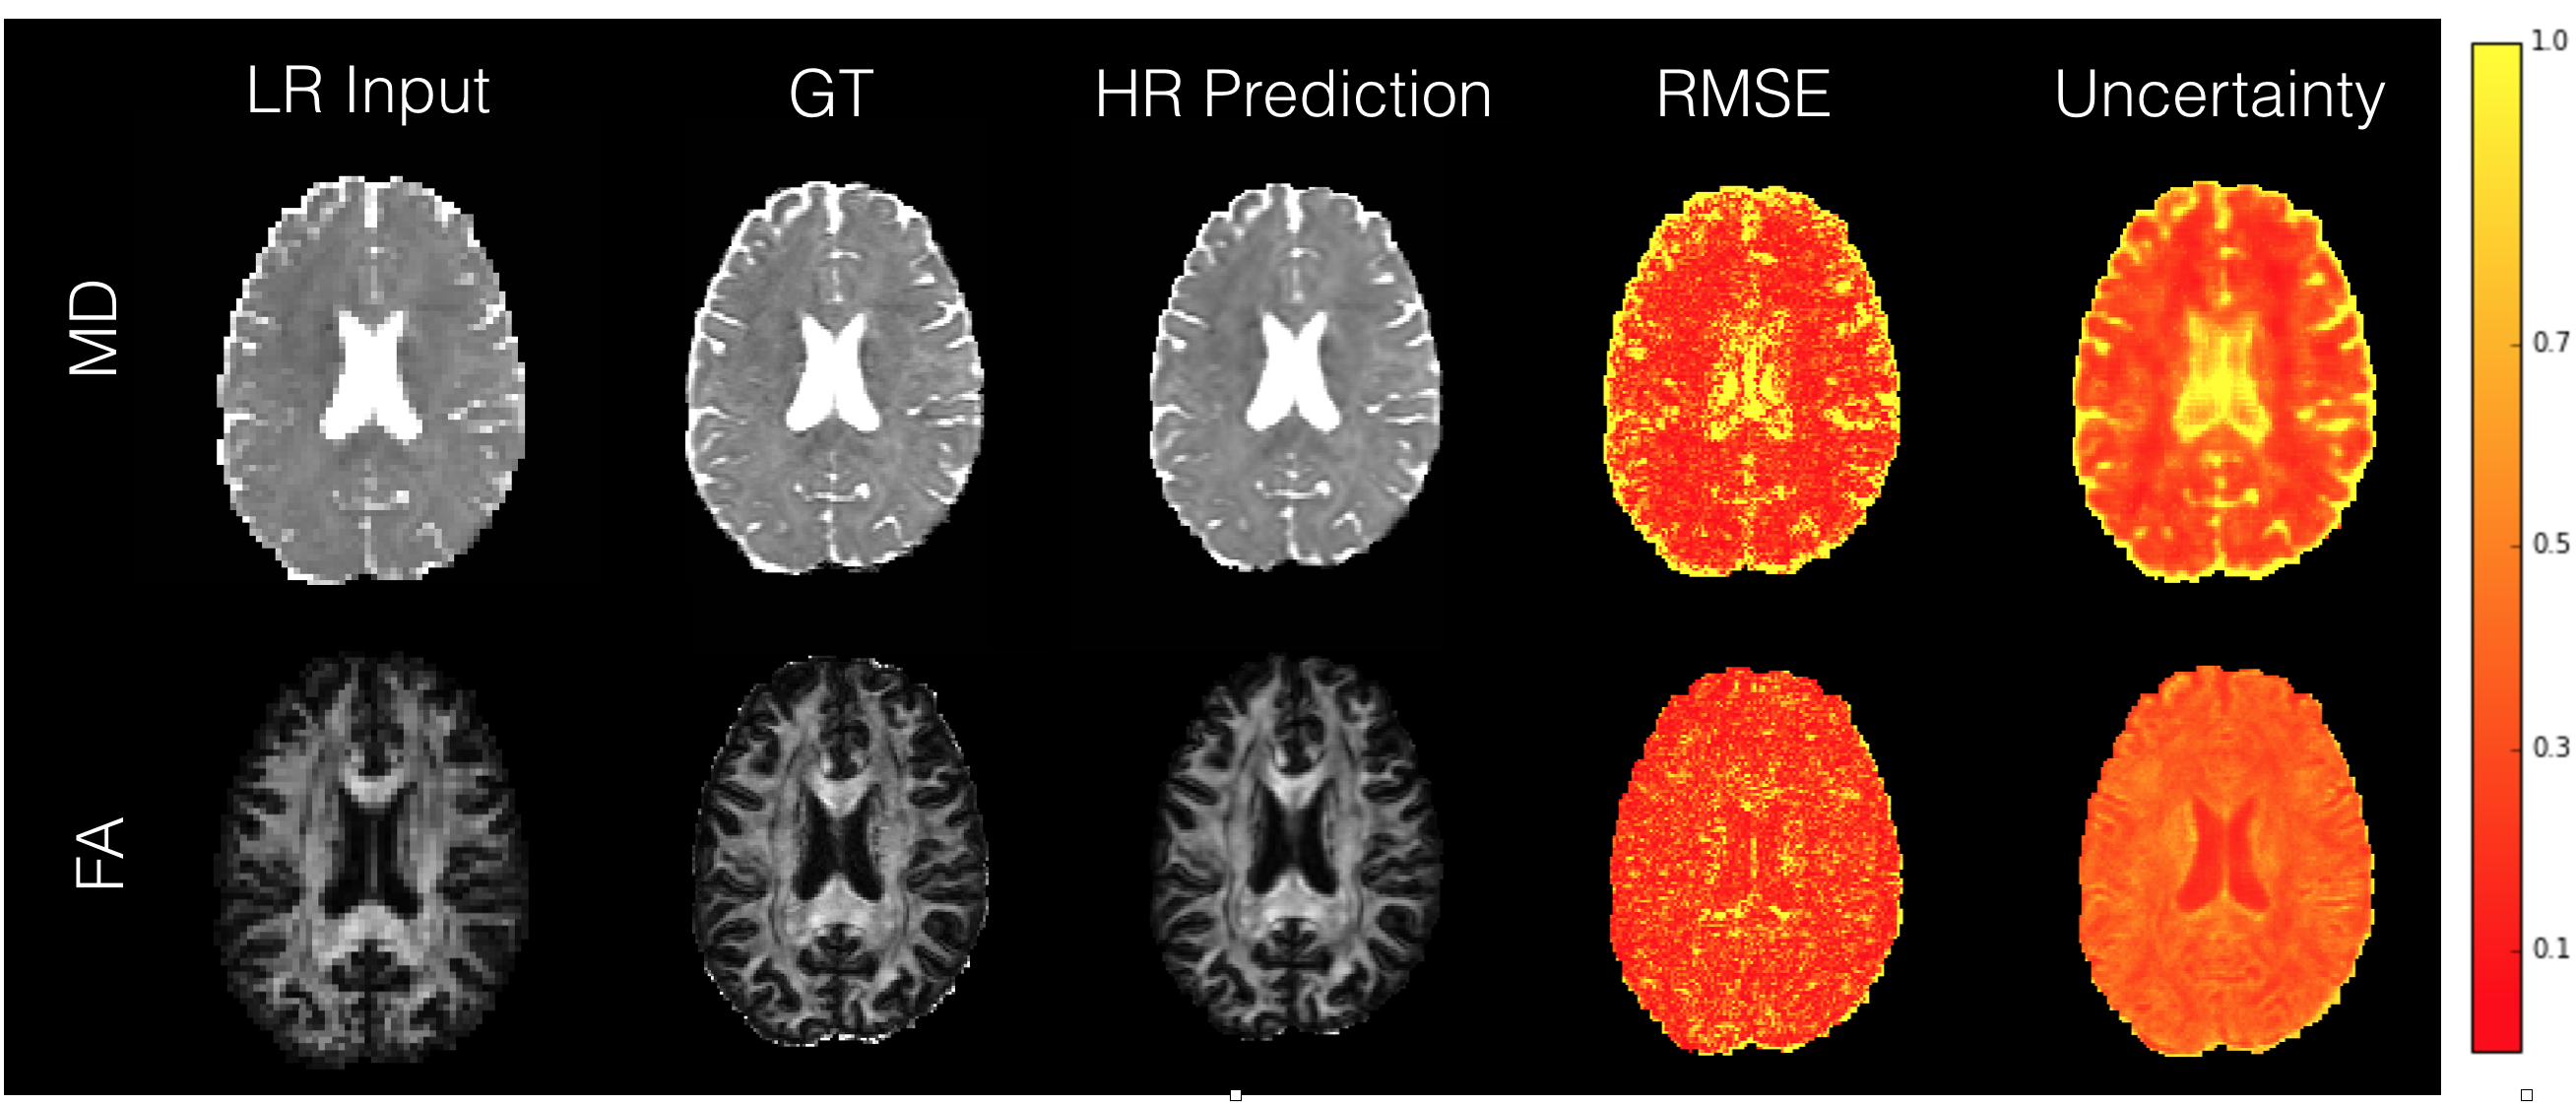 Comparison between voxel-wise RMSE and predictive uncertainty maps for FA and MD computed on a HCP test subject (min-max normalised for MD and FA separately). Low-res input, ground truth and the mean of high-resolution predictions are also shown.